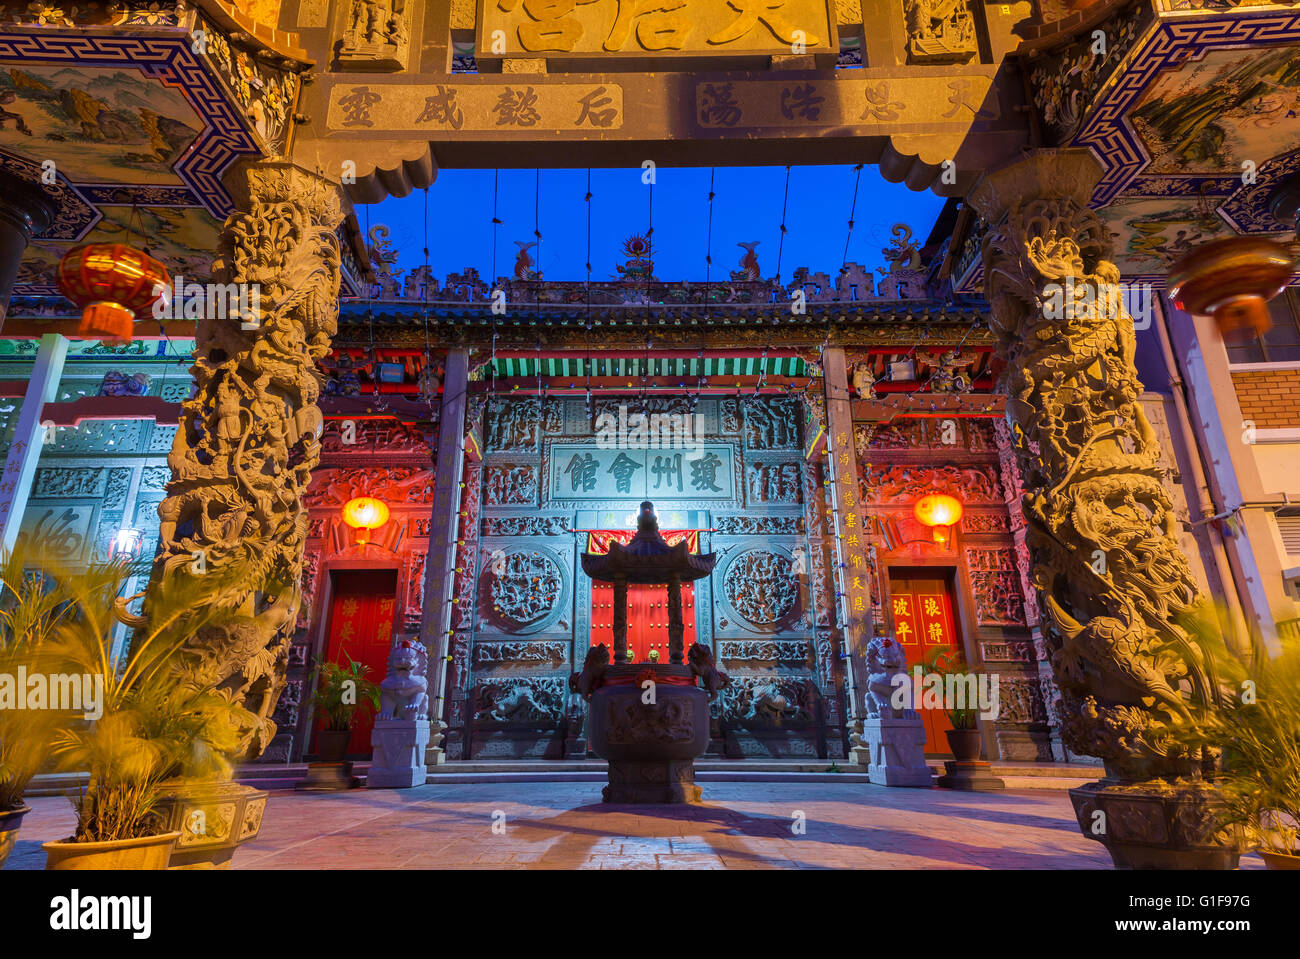 Dusk view of illuminated Hainan Temple, UNESCO Heritage Site, George Town, Penang, Malaysia Stock Photo